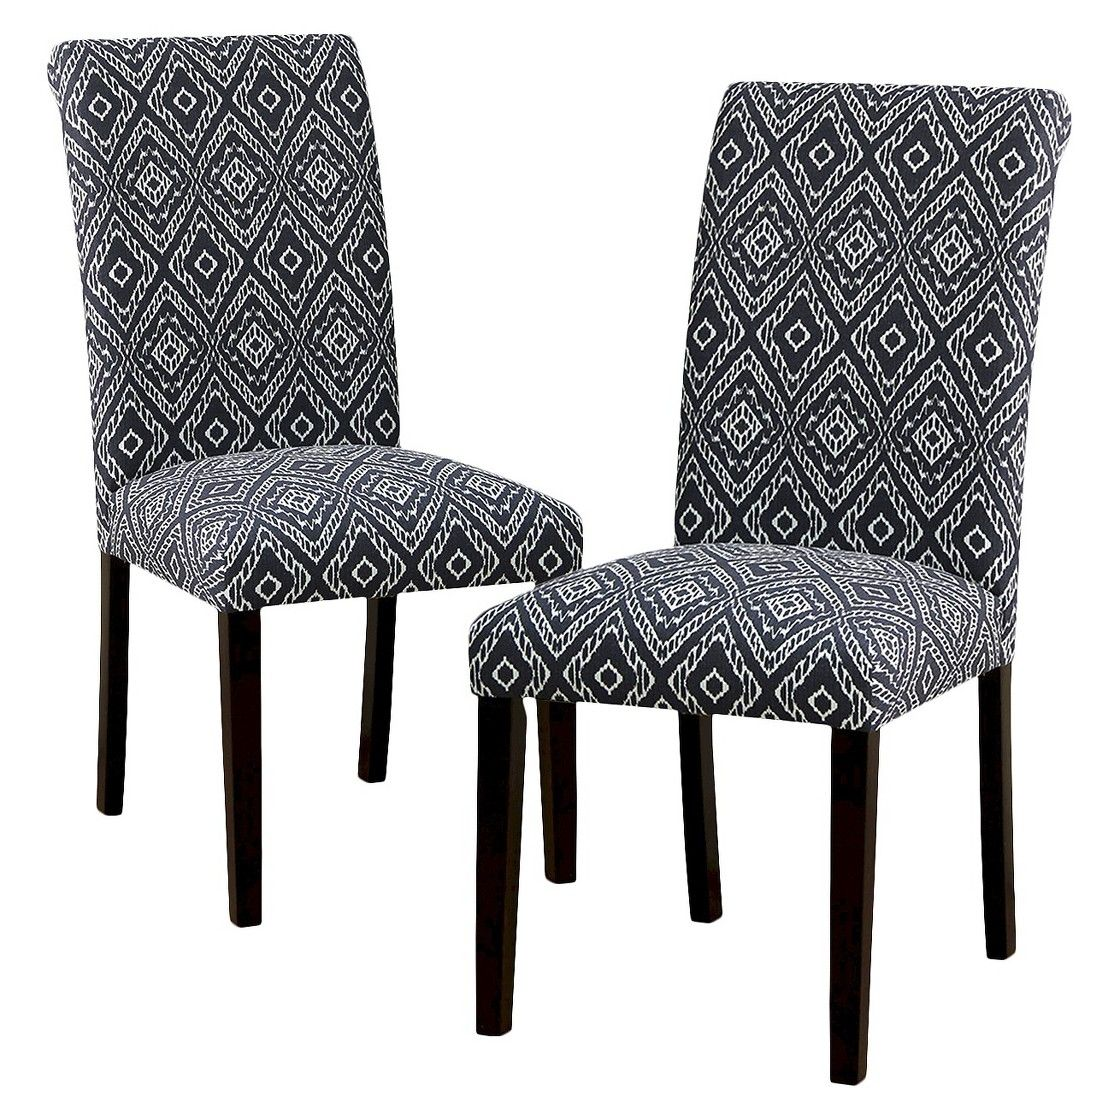 Room Avington Dining Chair